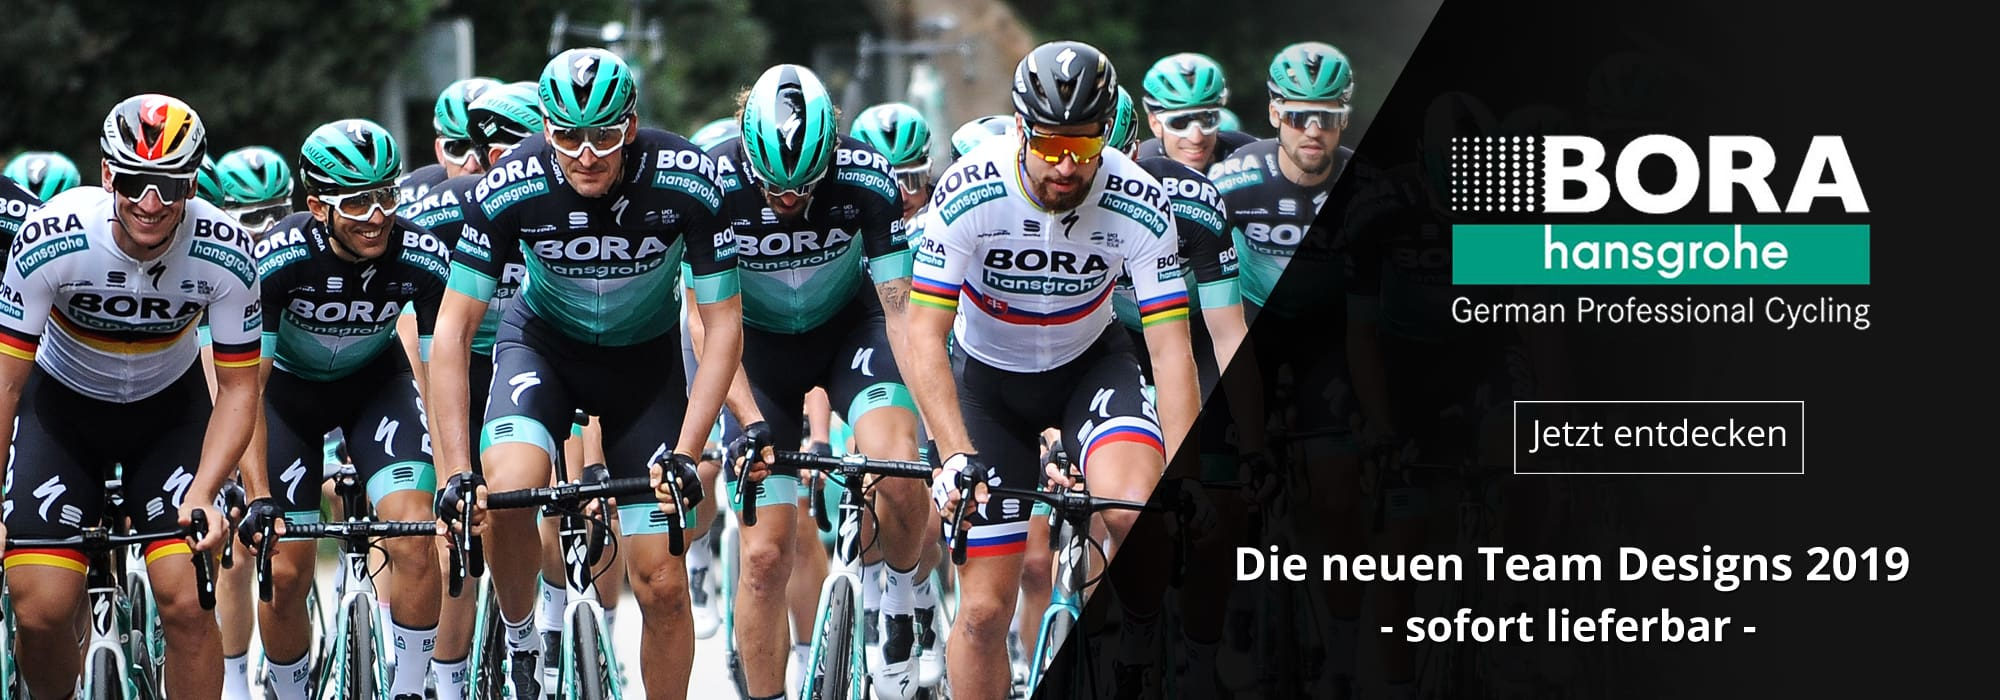 Bora Hansgrohe 2019 - ab sofort lieferbar